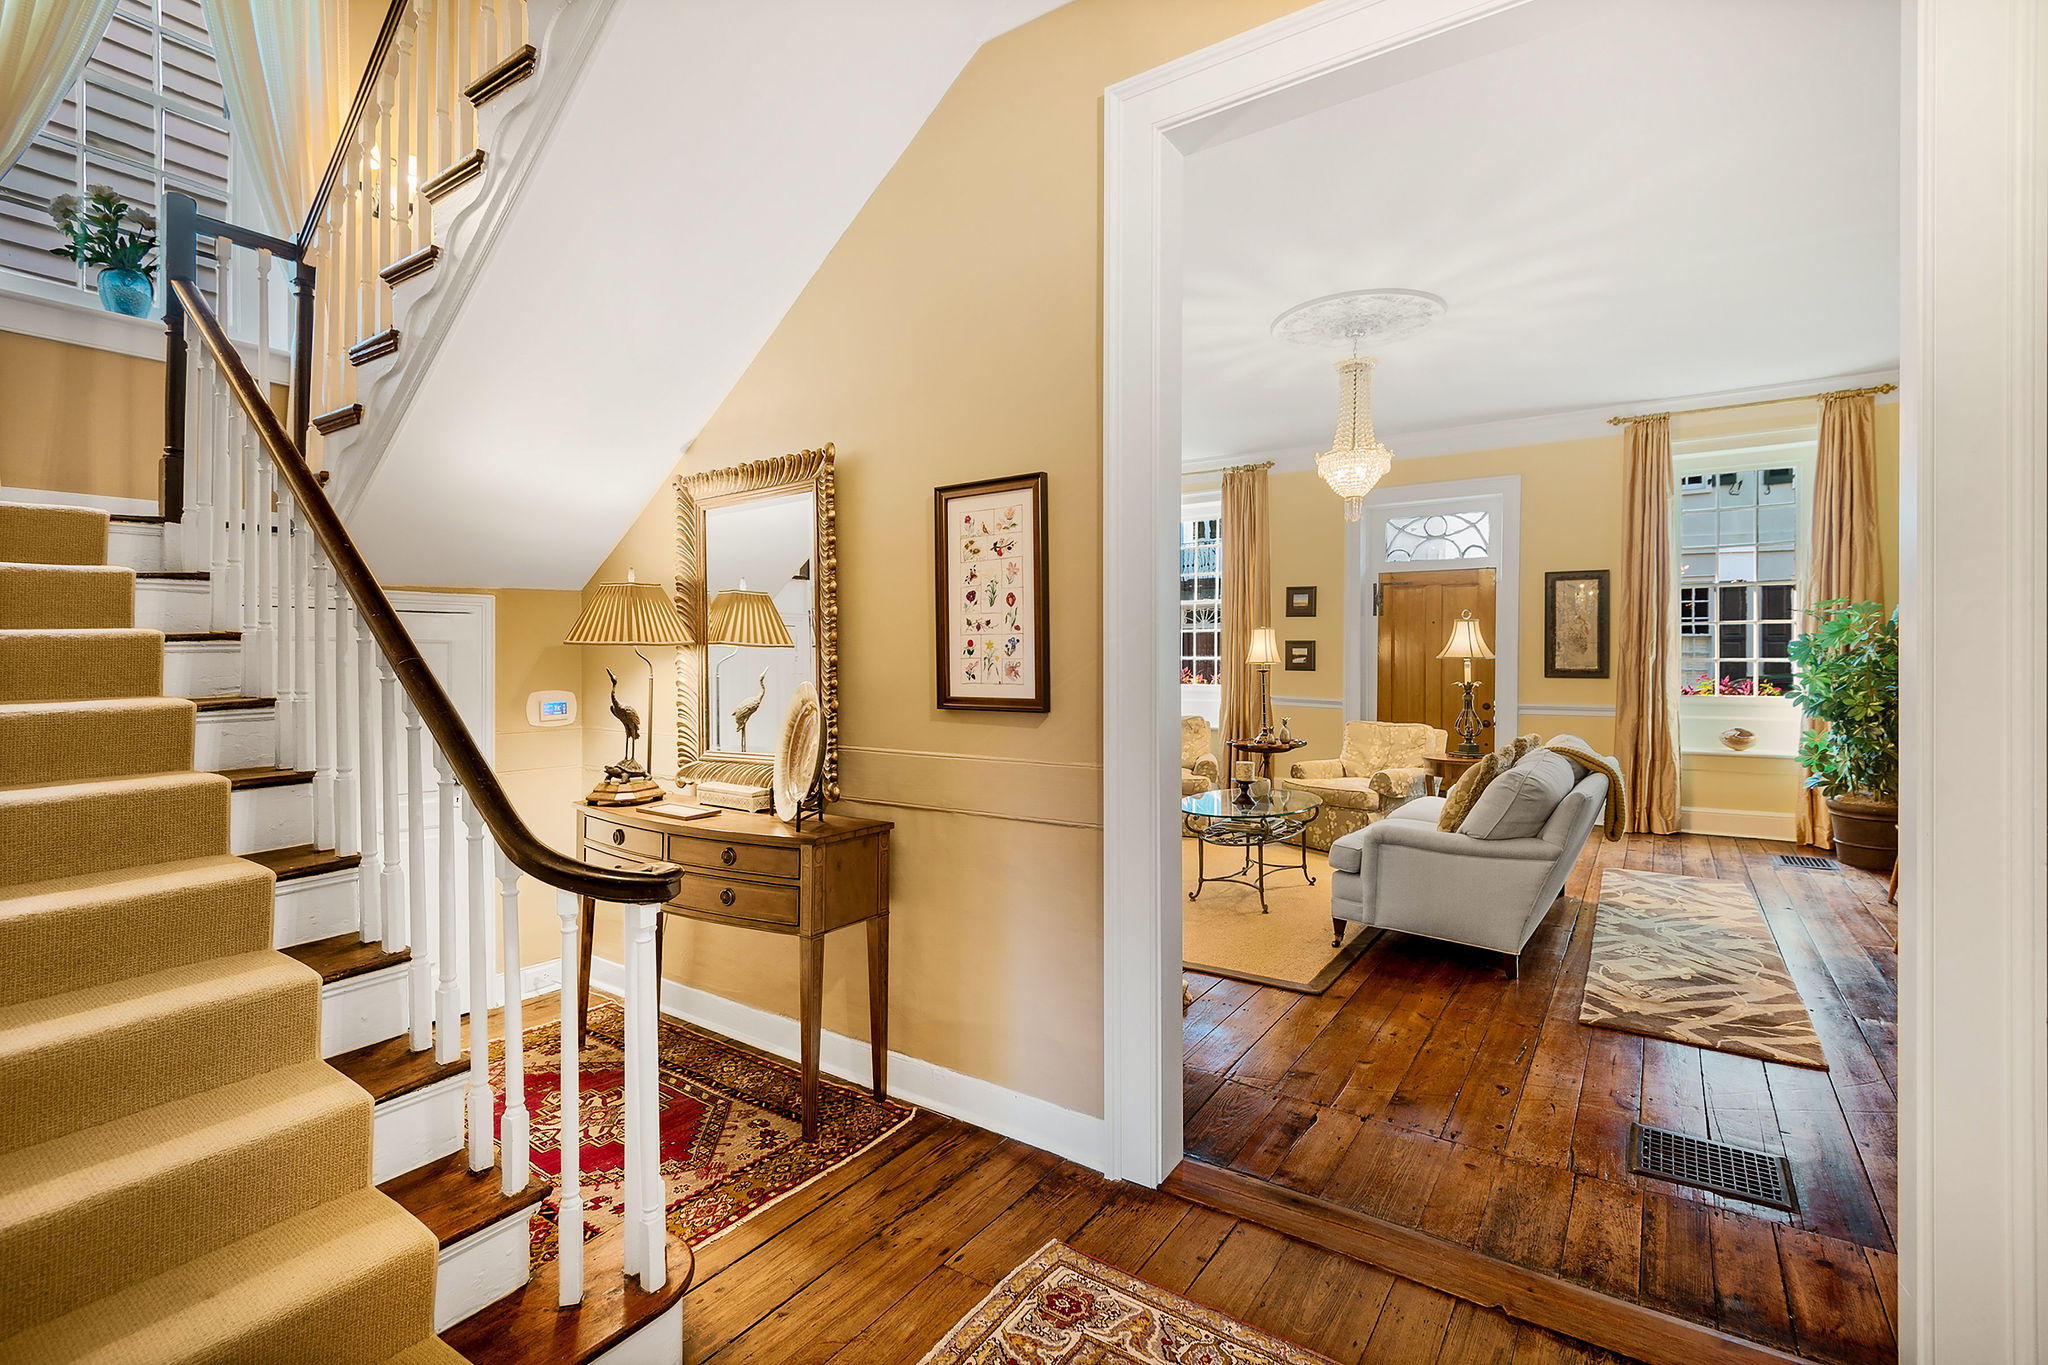 South of Broad Homes For Sale - 54 Tradd, Charleston, SC - 15